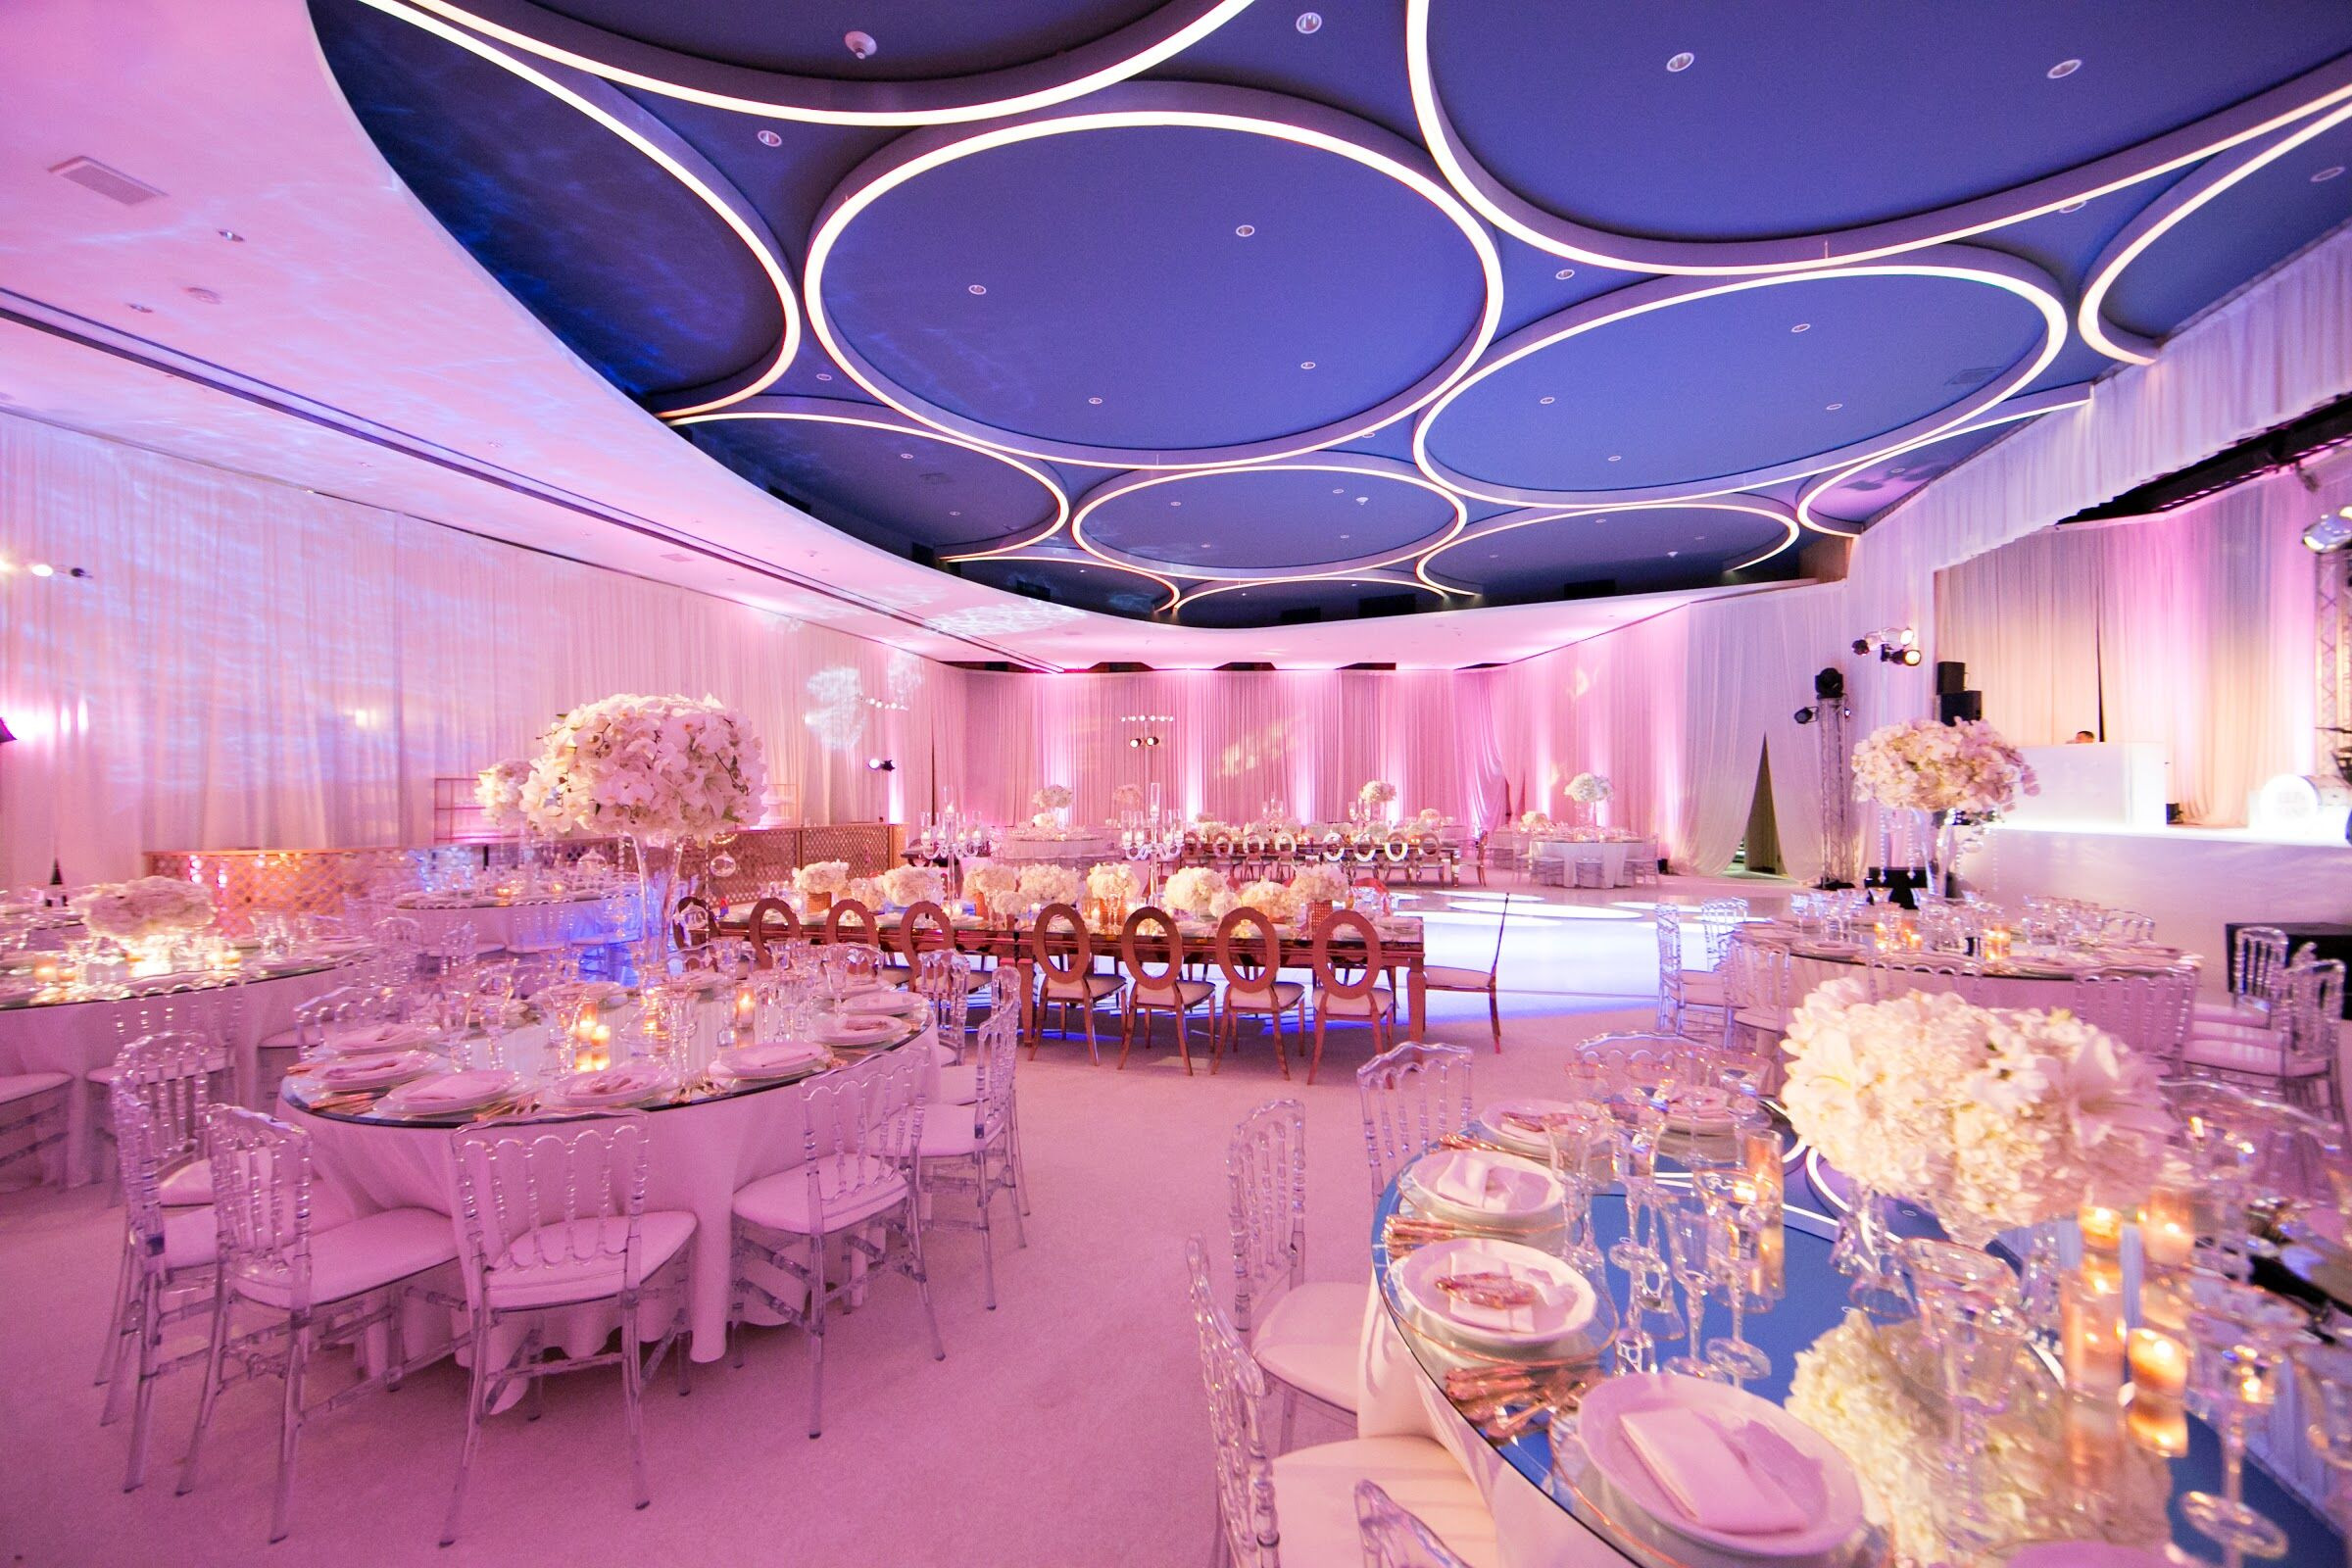 Wedding Ceremony Venues in Los Angeles, CA - The Knot